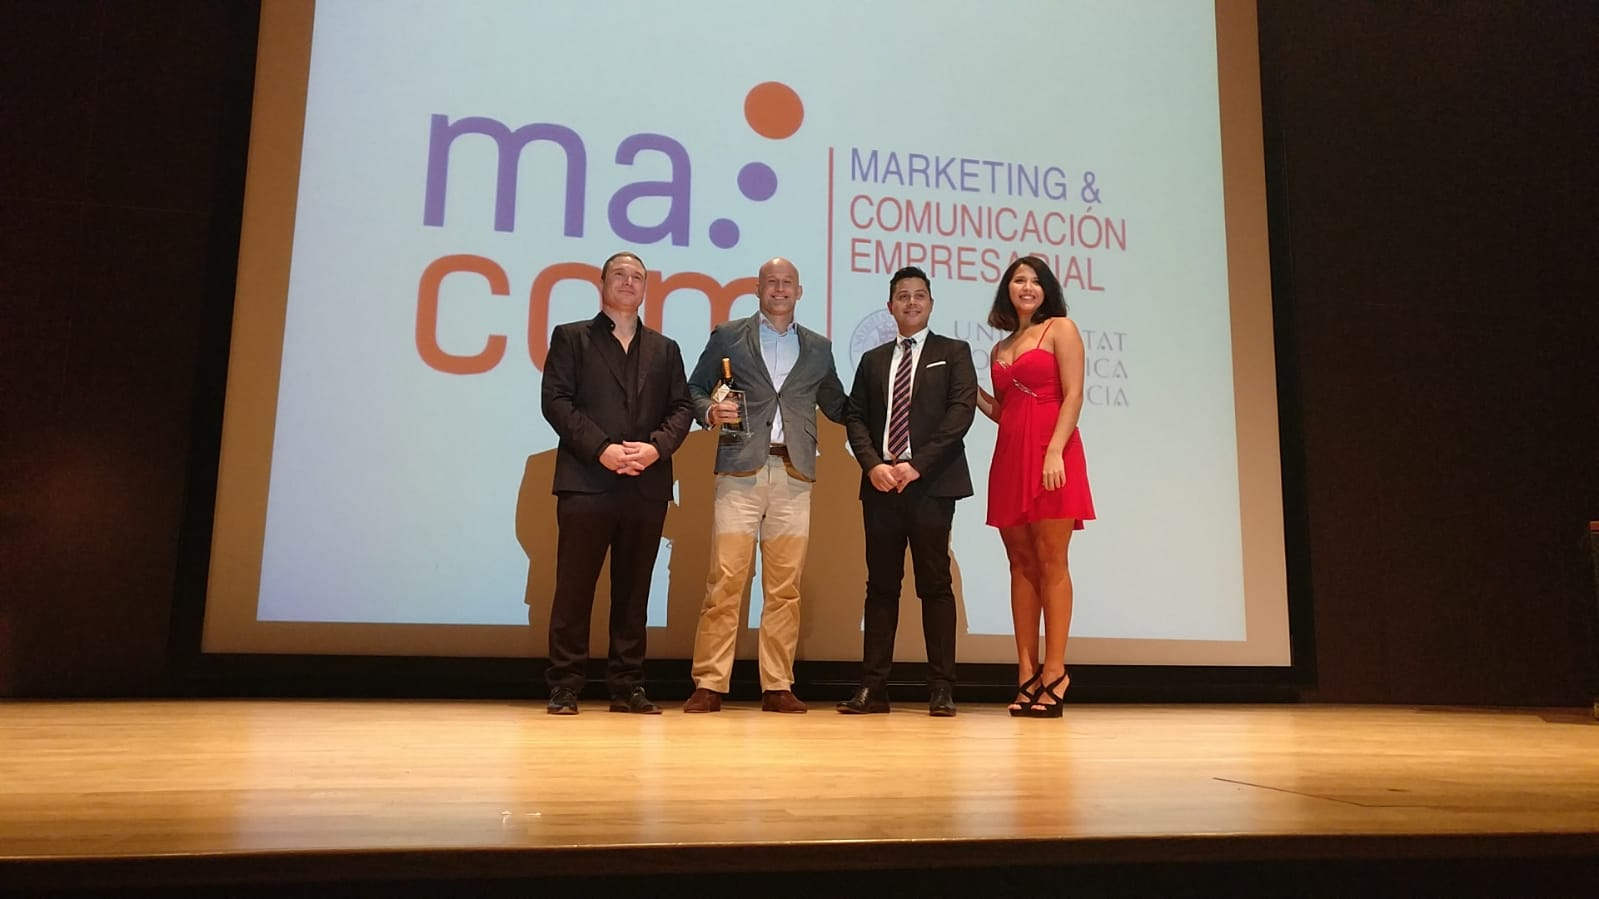 premio agencia marketing digital valencia 2018